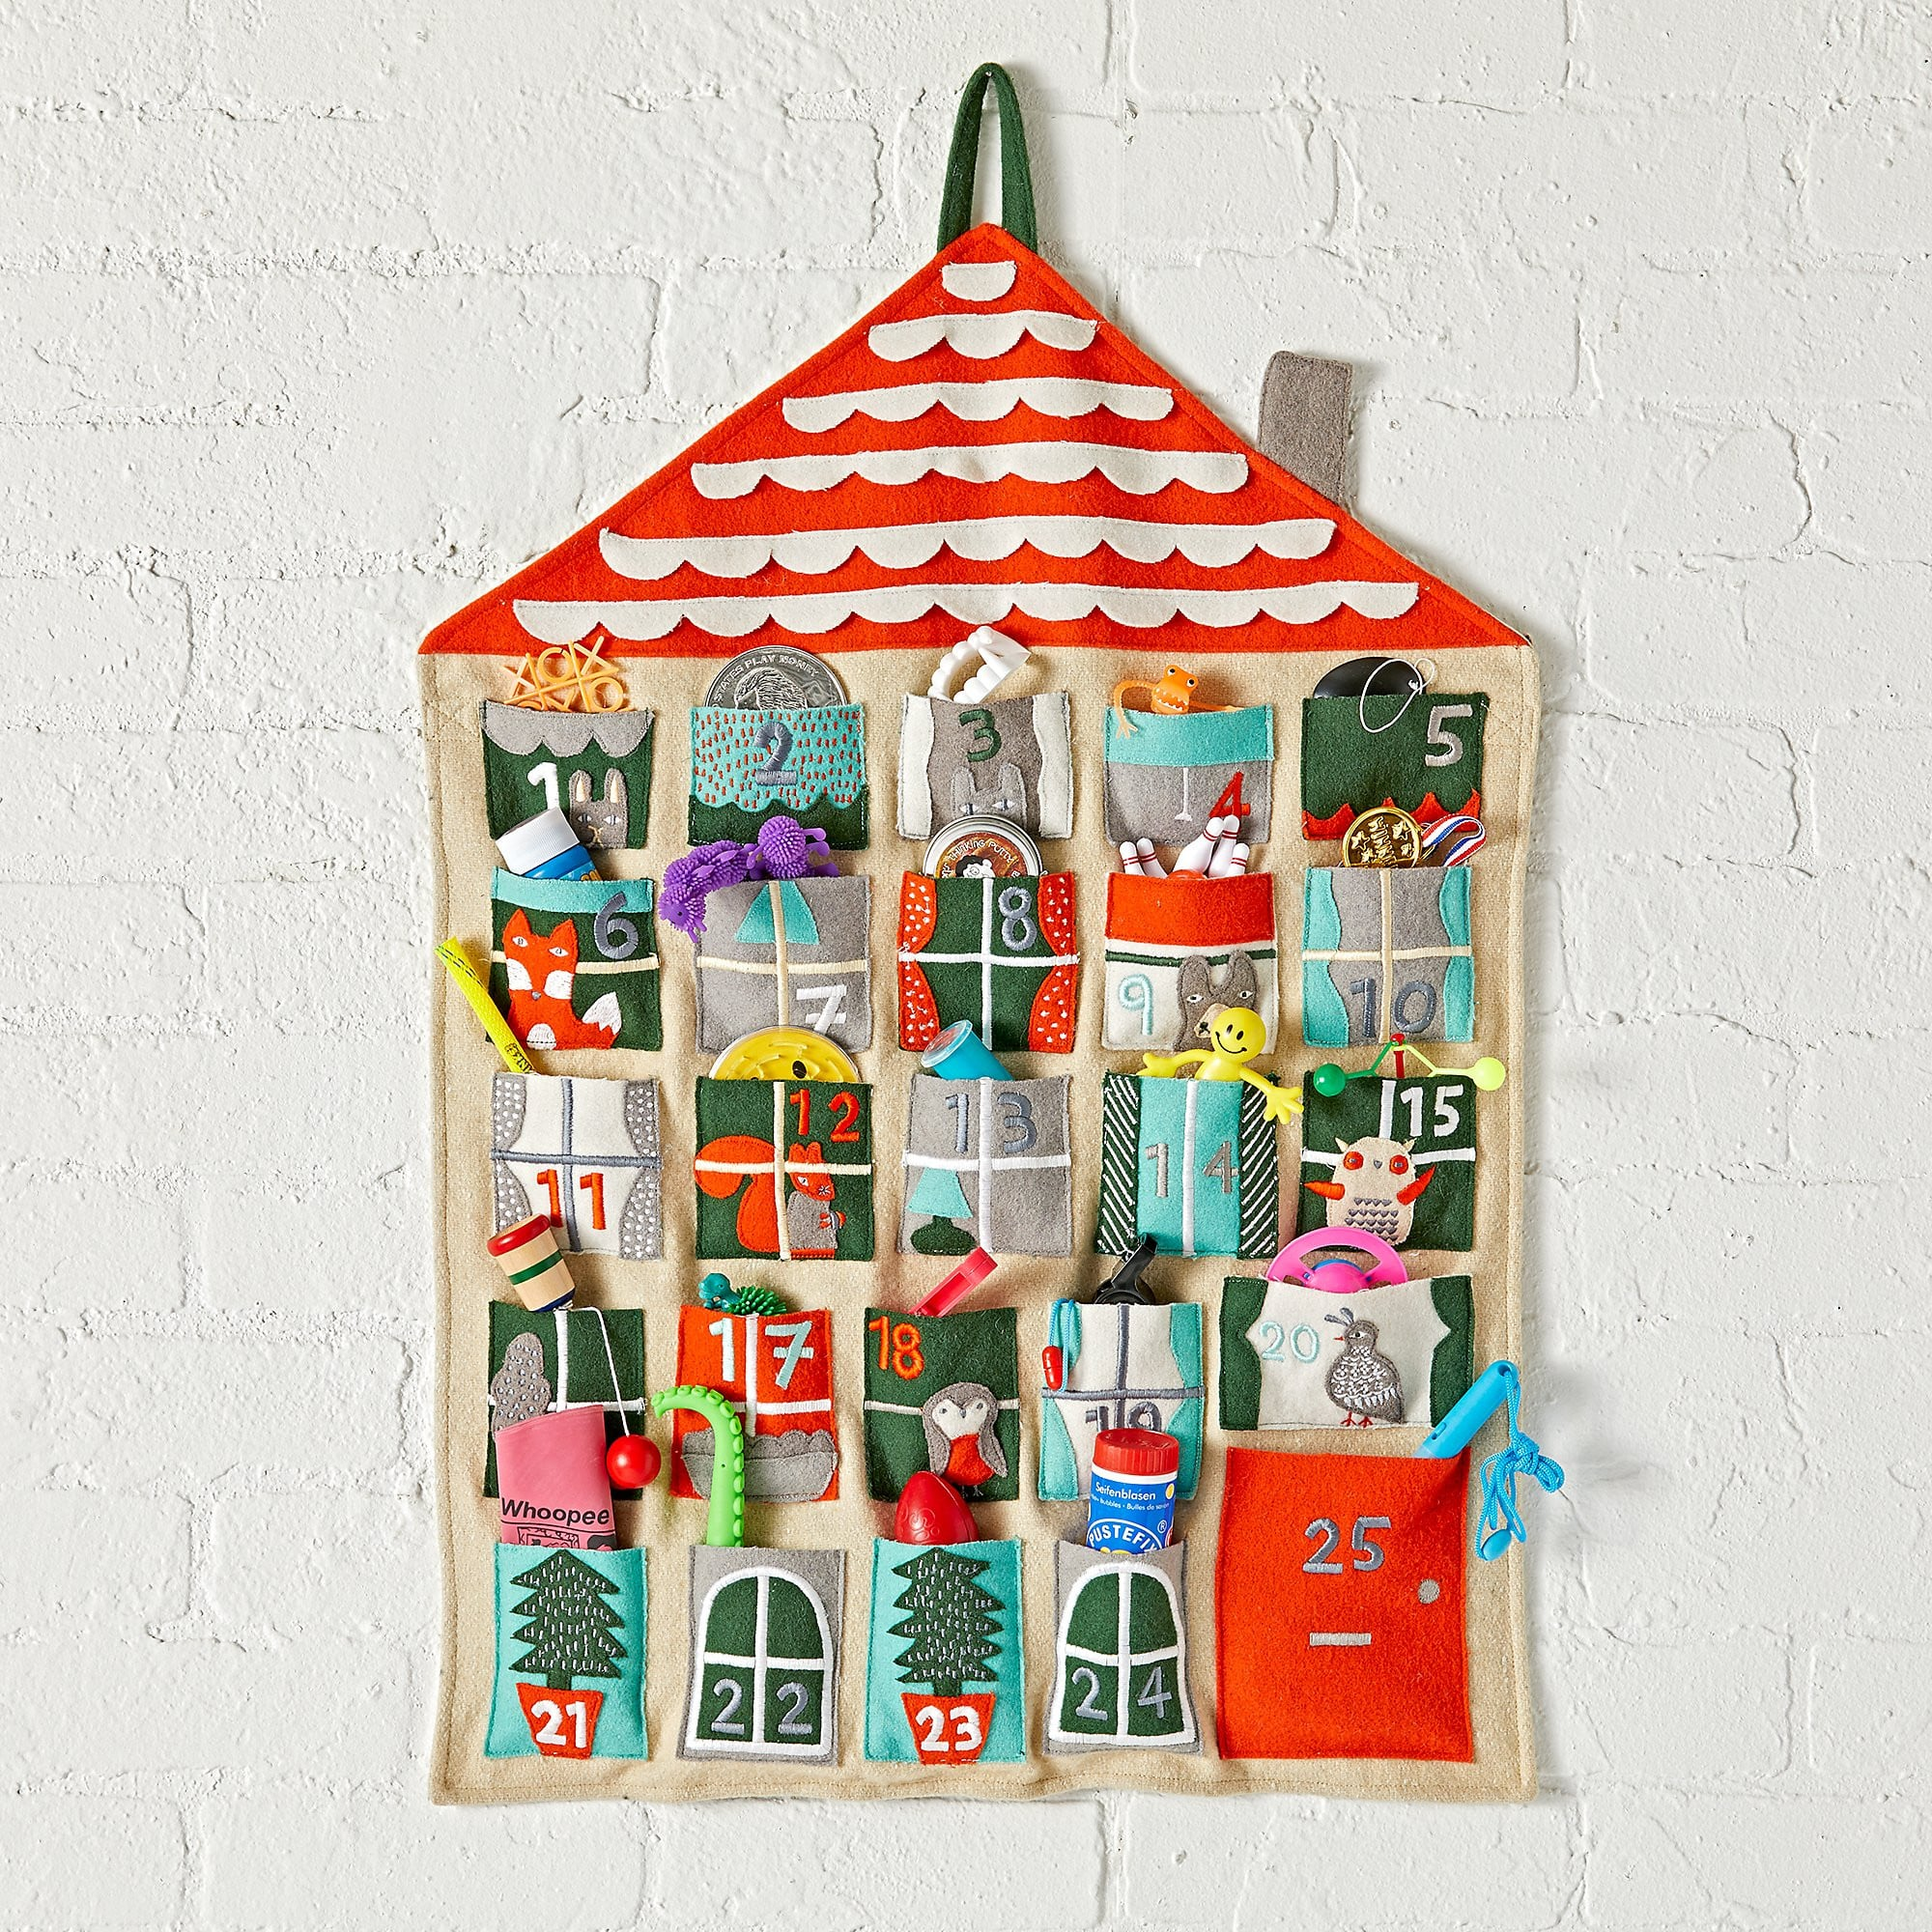 for barns calendar can you use calendars again fun barn tree kids reusable vermont fabric pottery christmas advent family